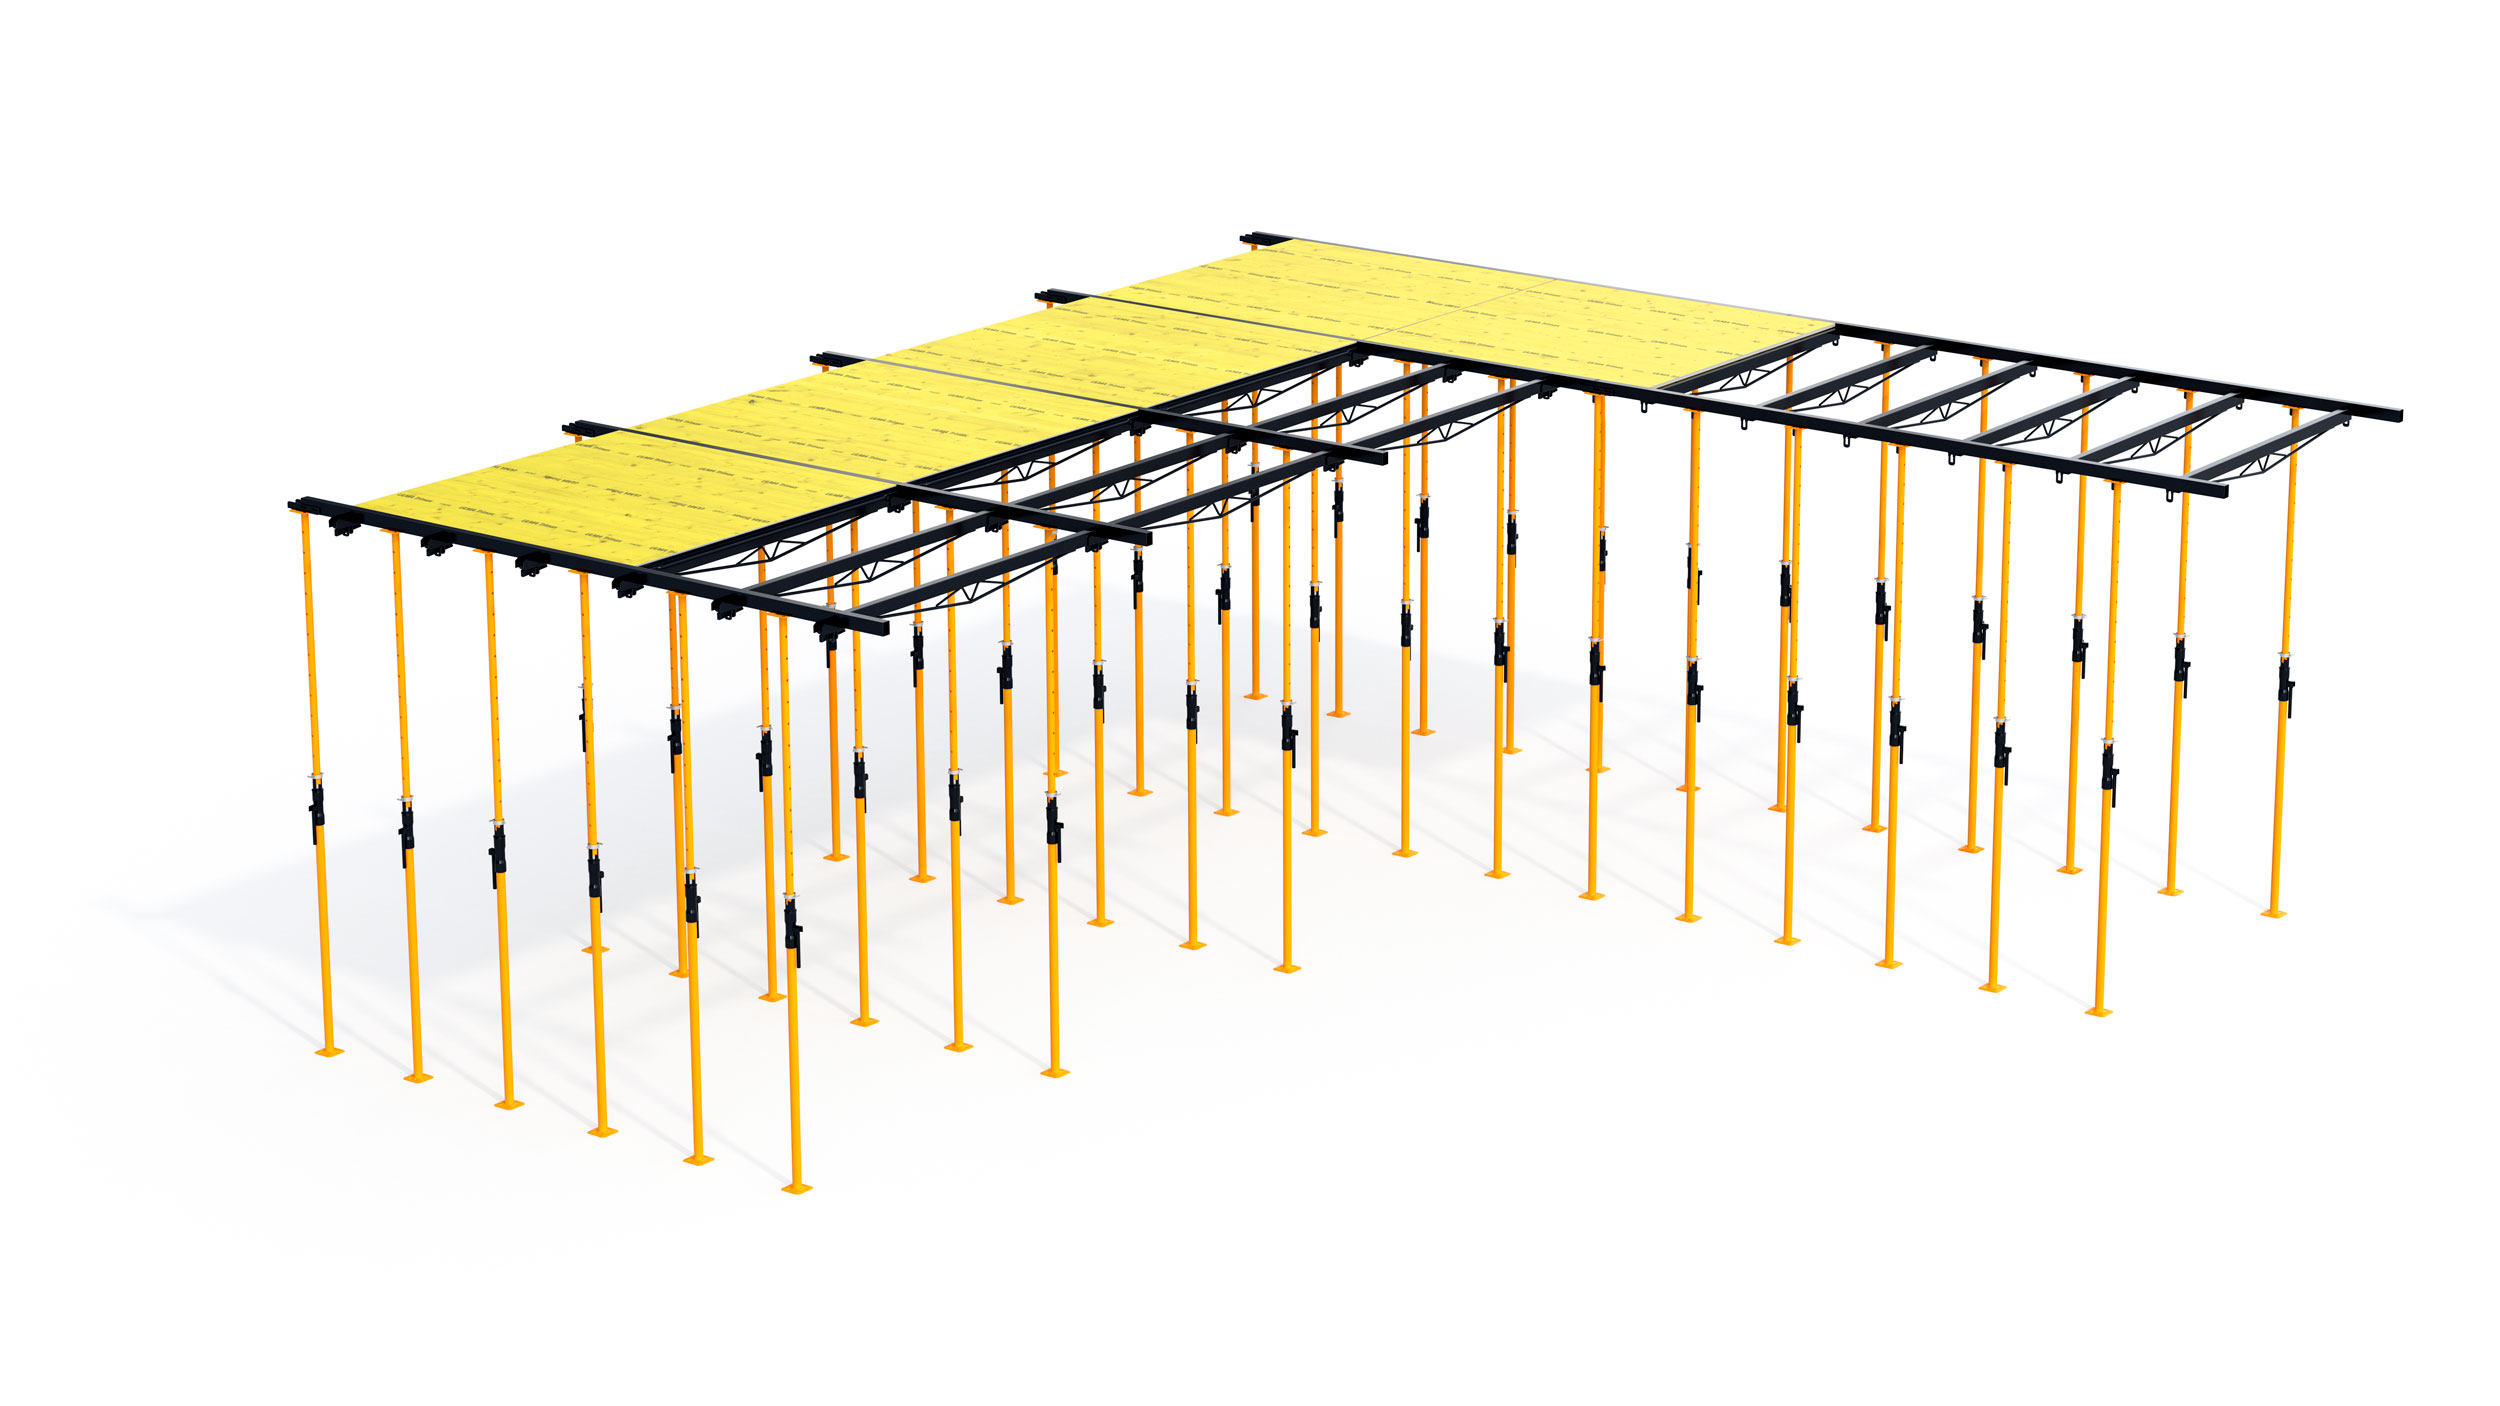 High performance recoverable slab formwork system for building construction.  Highlights: light components, fast assembly and disassembly.